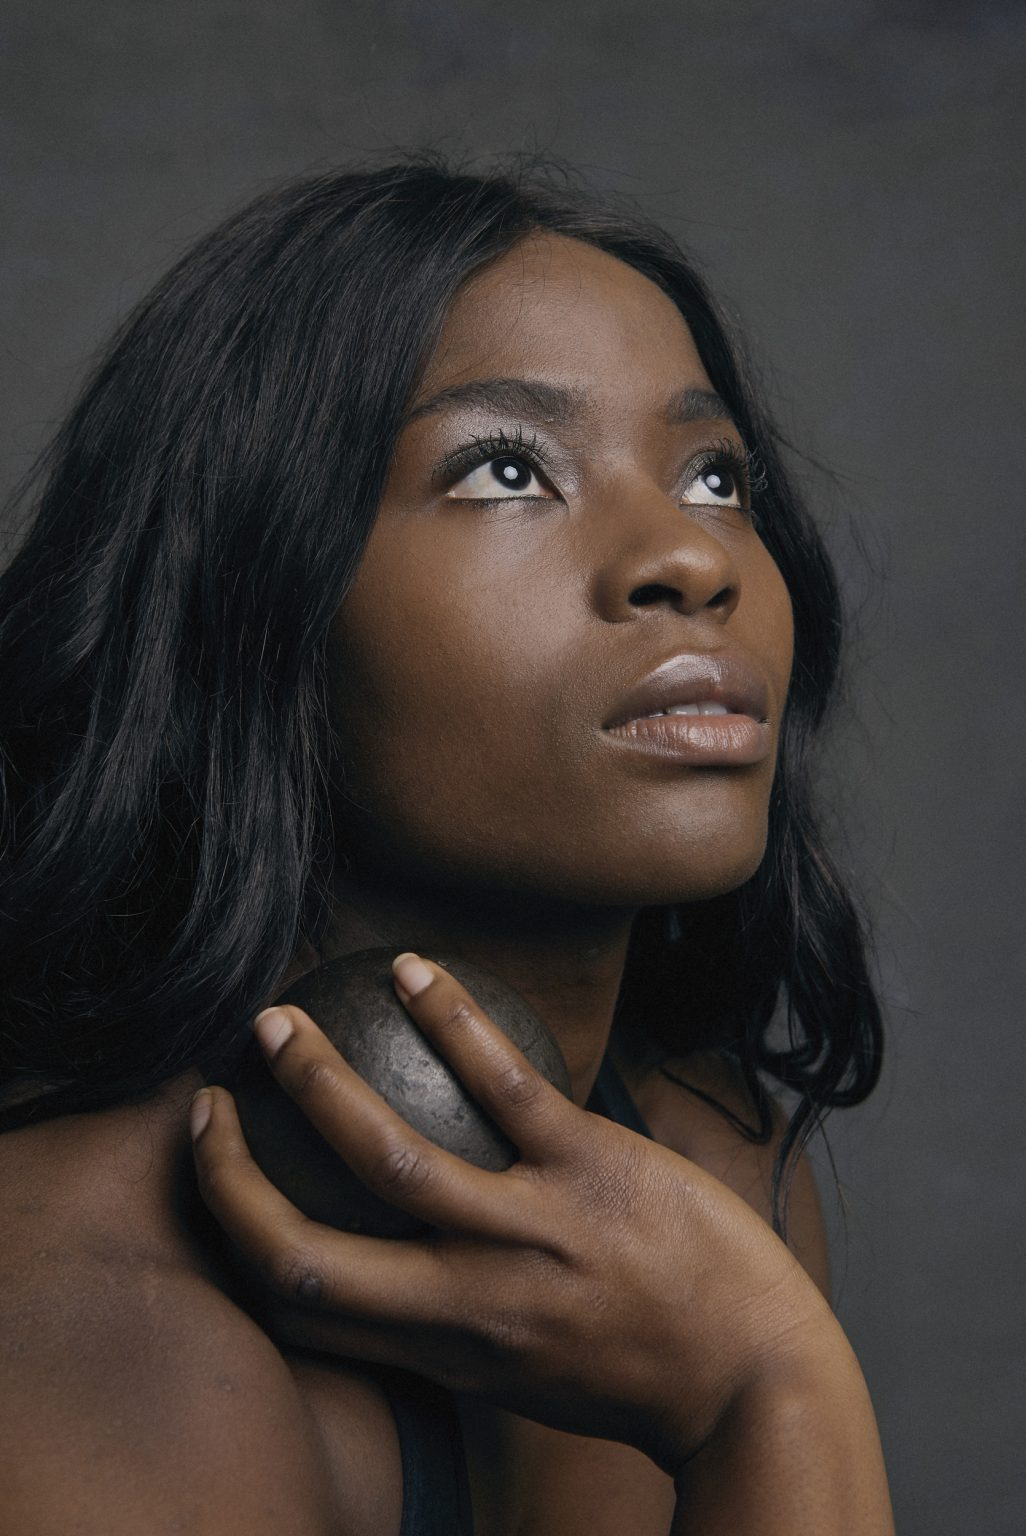 """""""My name is Danielle Frederique Madam, I am 23 years old and I was born in Cameroon on June 23, 1997. My parents are Cameroonian and after the sudden death of my father, my mother decided to take me to live in Italy with an uncle who had been here long ago. A few years after my arrival in Italy, unfortunately my uncle passed away and I have been transferred to a foster home in Pavia. In the new school I started practicing the shot put. I soon became very good and in 2013 I was able to participate in the world championships. The bad news came when I didn't see my name on the summons; I was told that I was not Italian and consequently I could not represent Italy. I discovered that I was a foreigner in the Country where I grew up."""" Danielle, winner of 5 titles as Italian champion, after 17 years obtained Italian citizenship on April 30, 2021."""